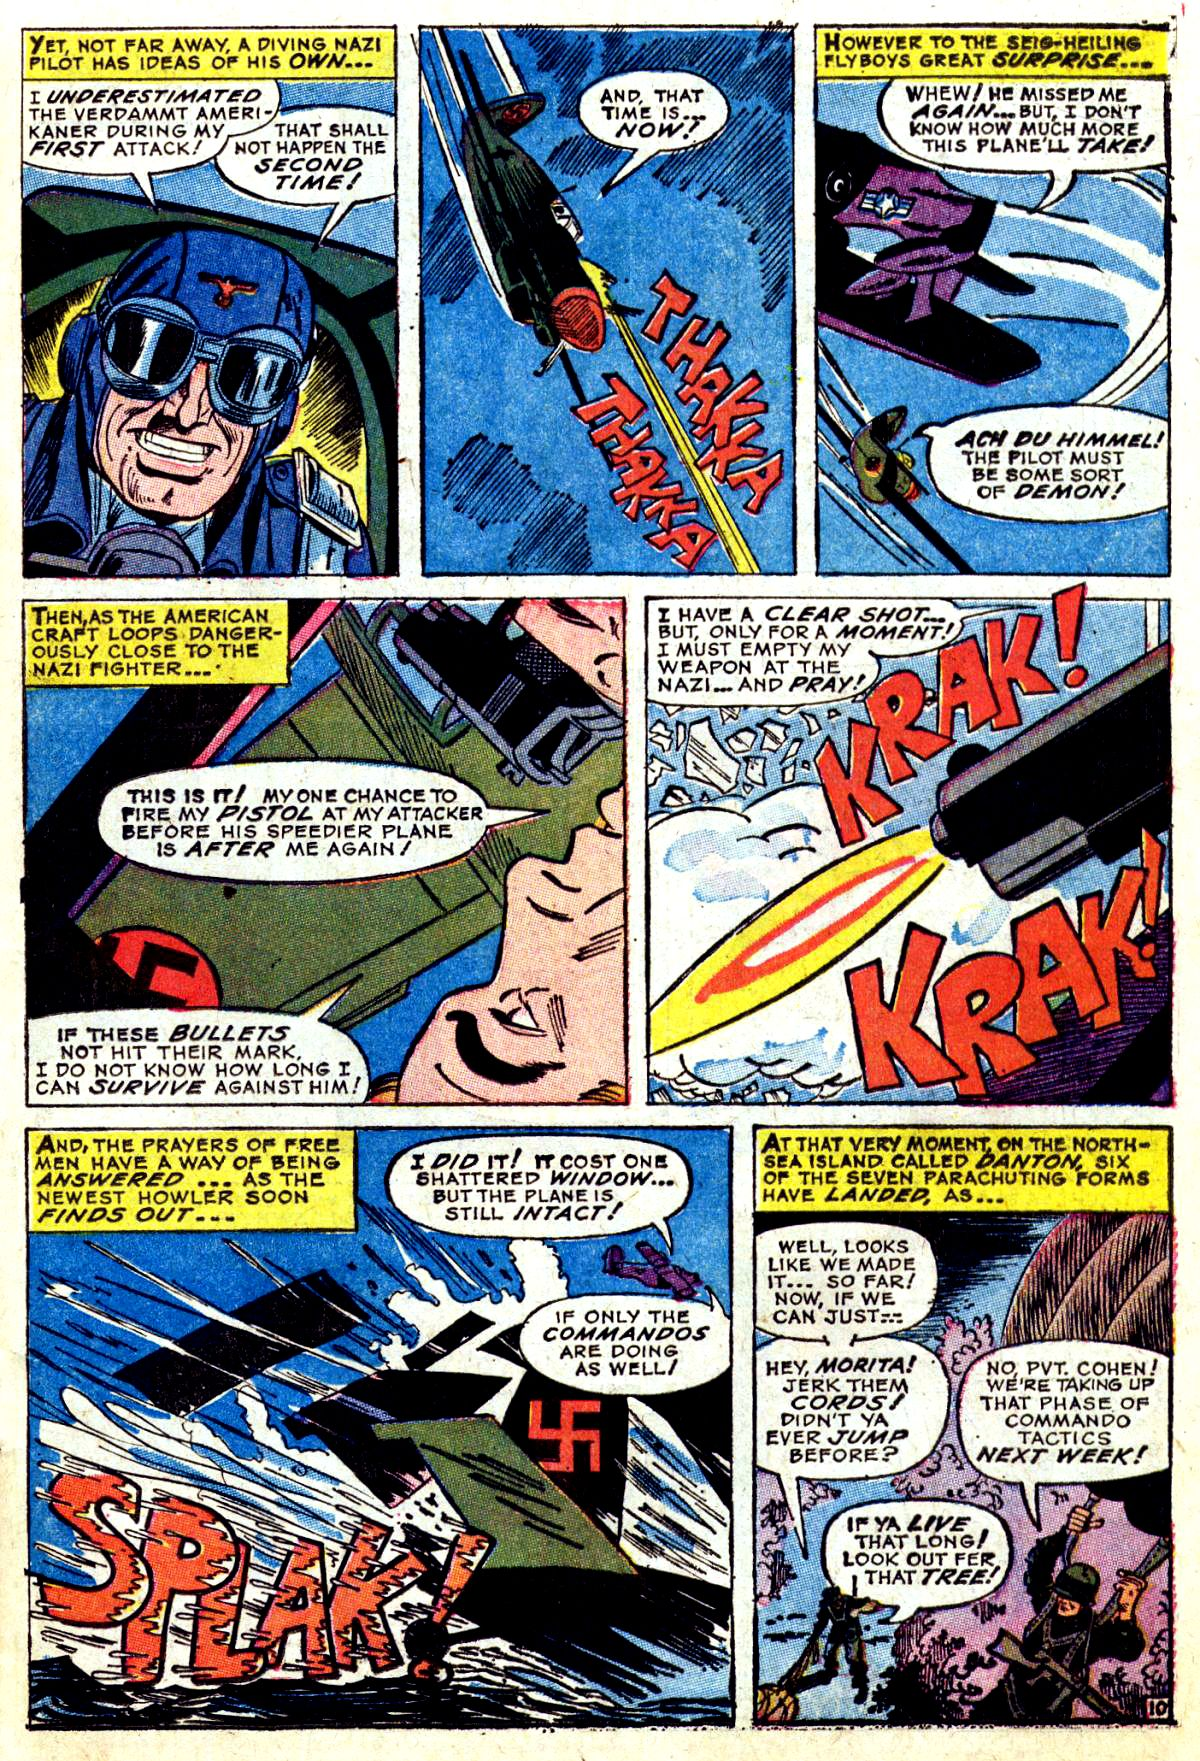 Read online Sgt. Fury comic -  Issue #38 - 15